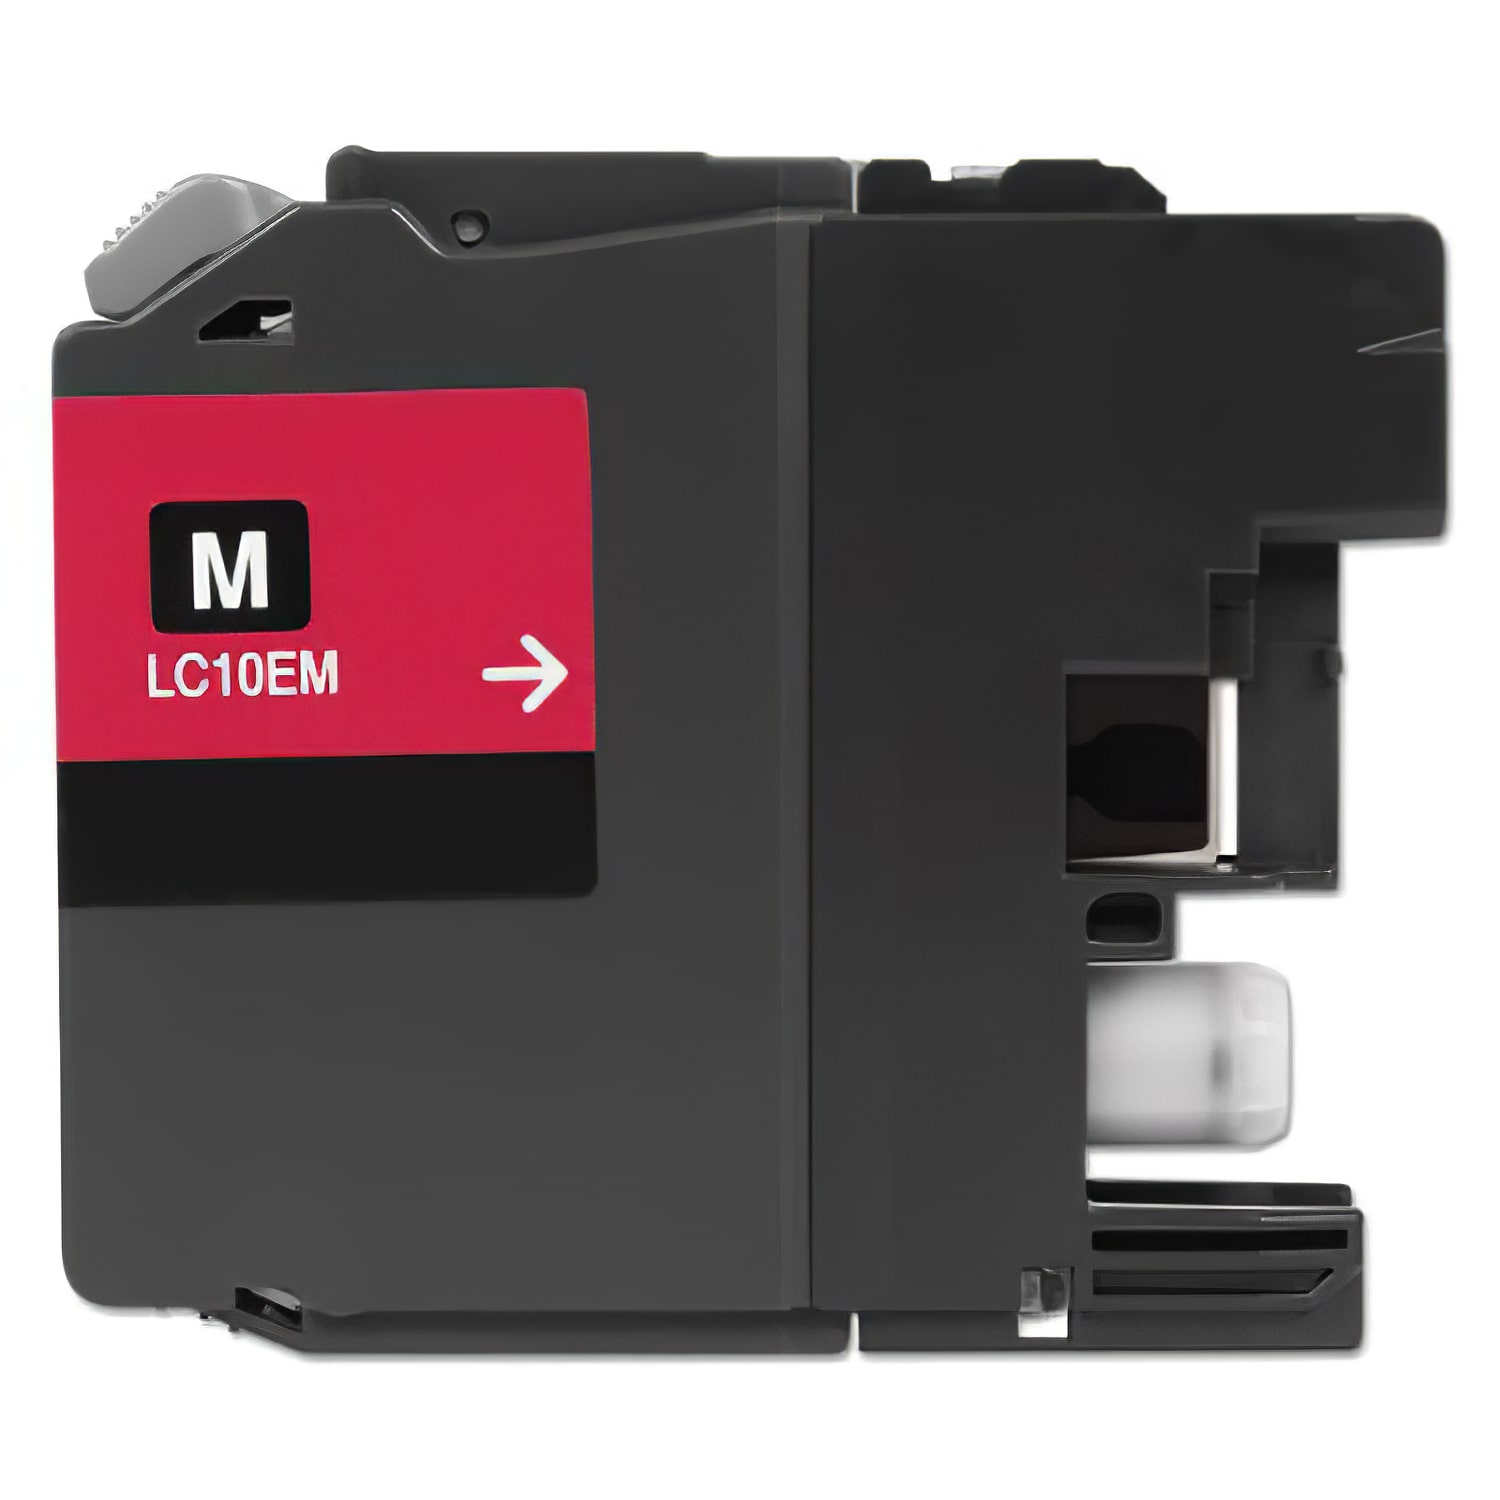 LC10EM Ink Cartridge - Brother Compatible (Magenta)